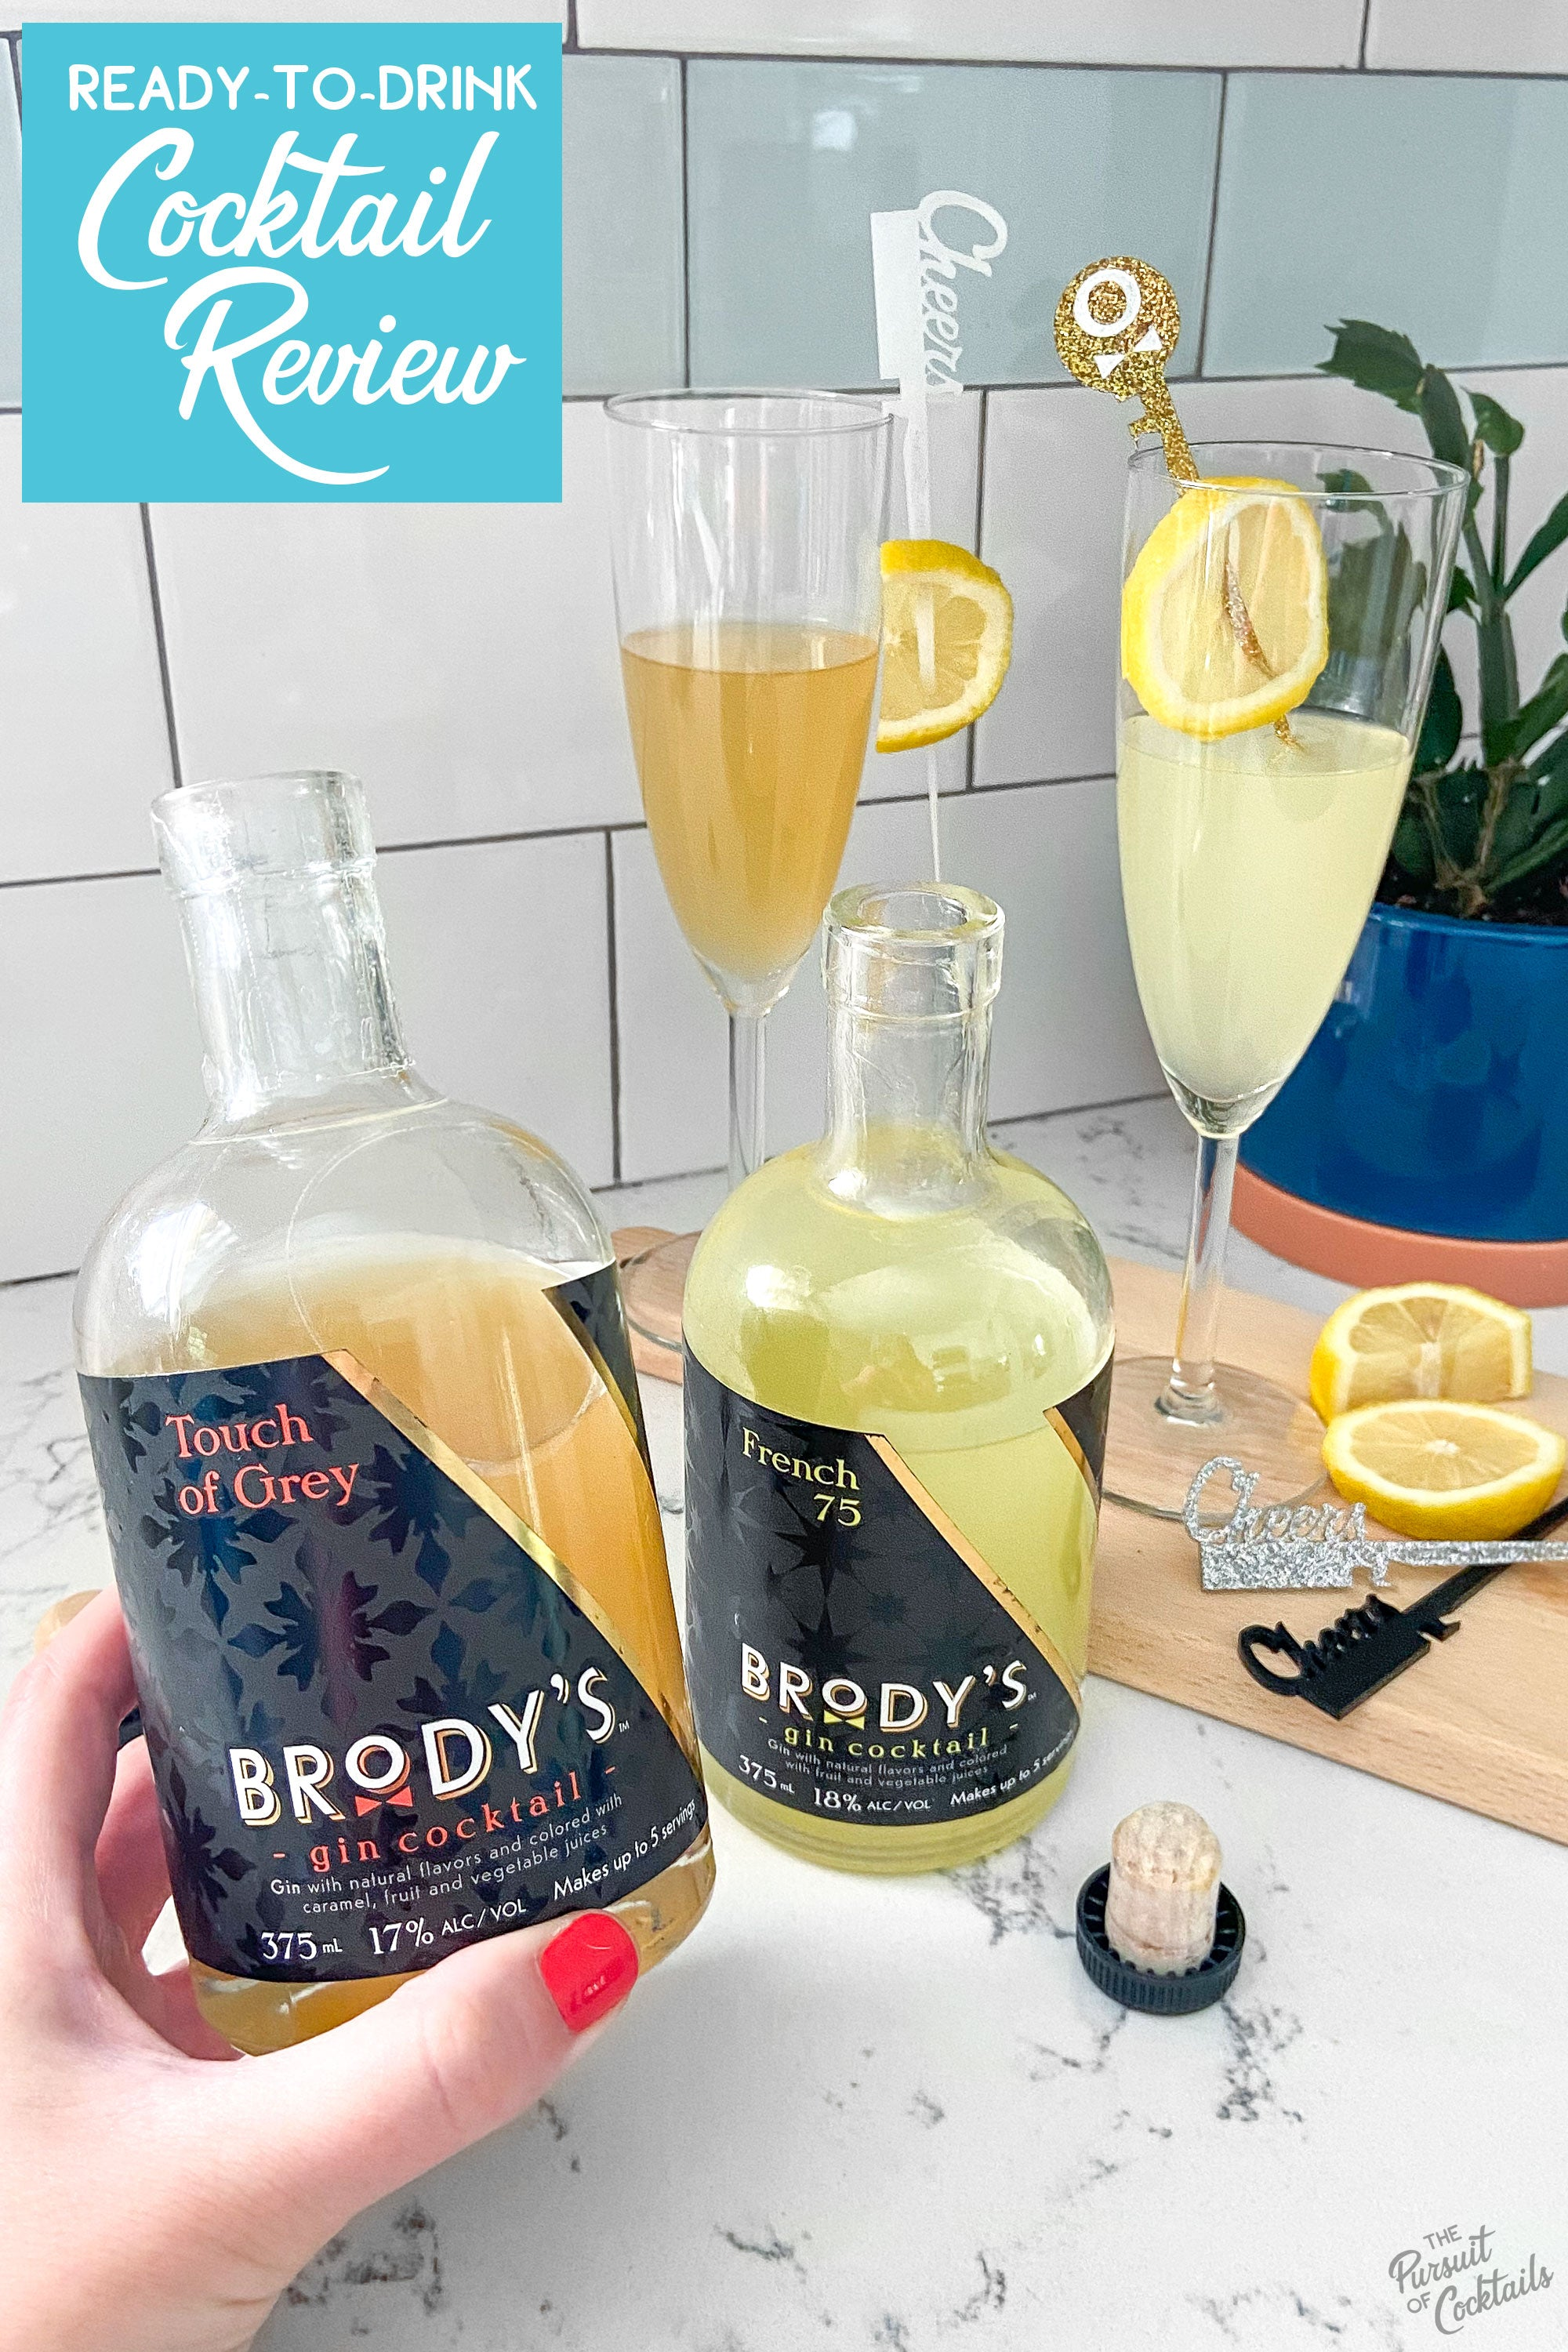 Brody's Craft Cocktails ready to drink French 75 and Touch of Grey gin cocktails reviewed by The Pursuit of Cocktails